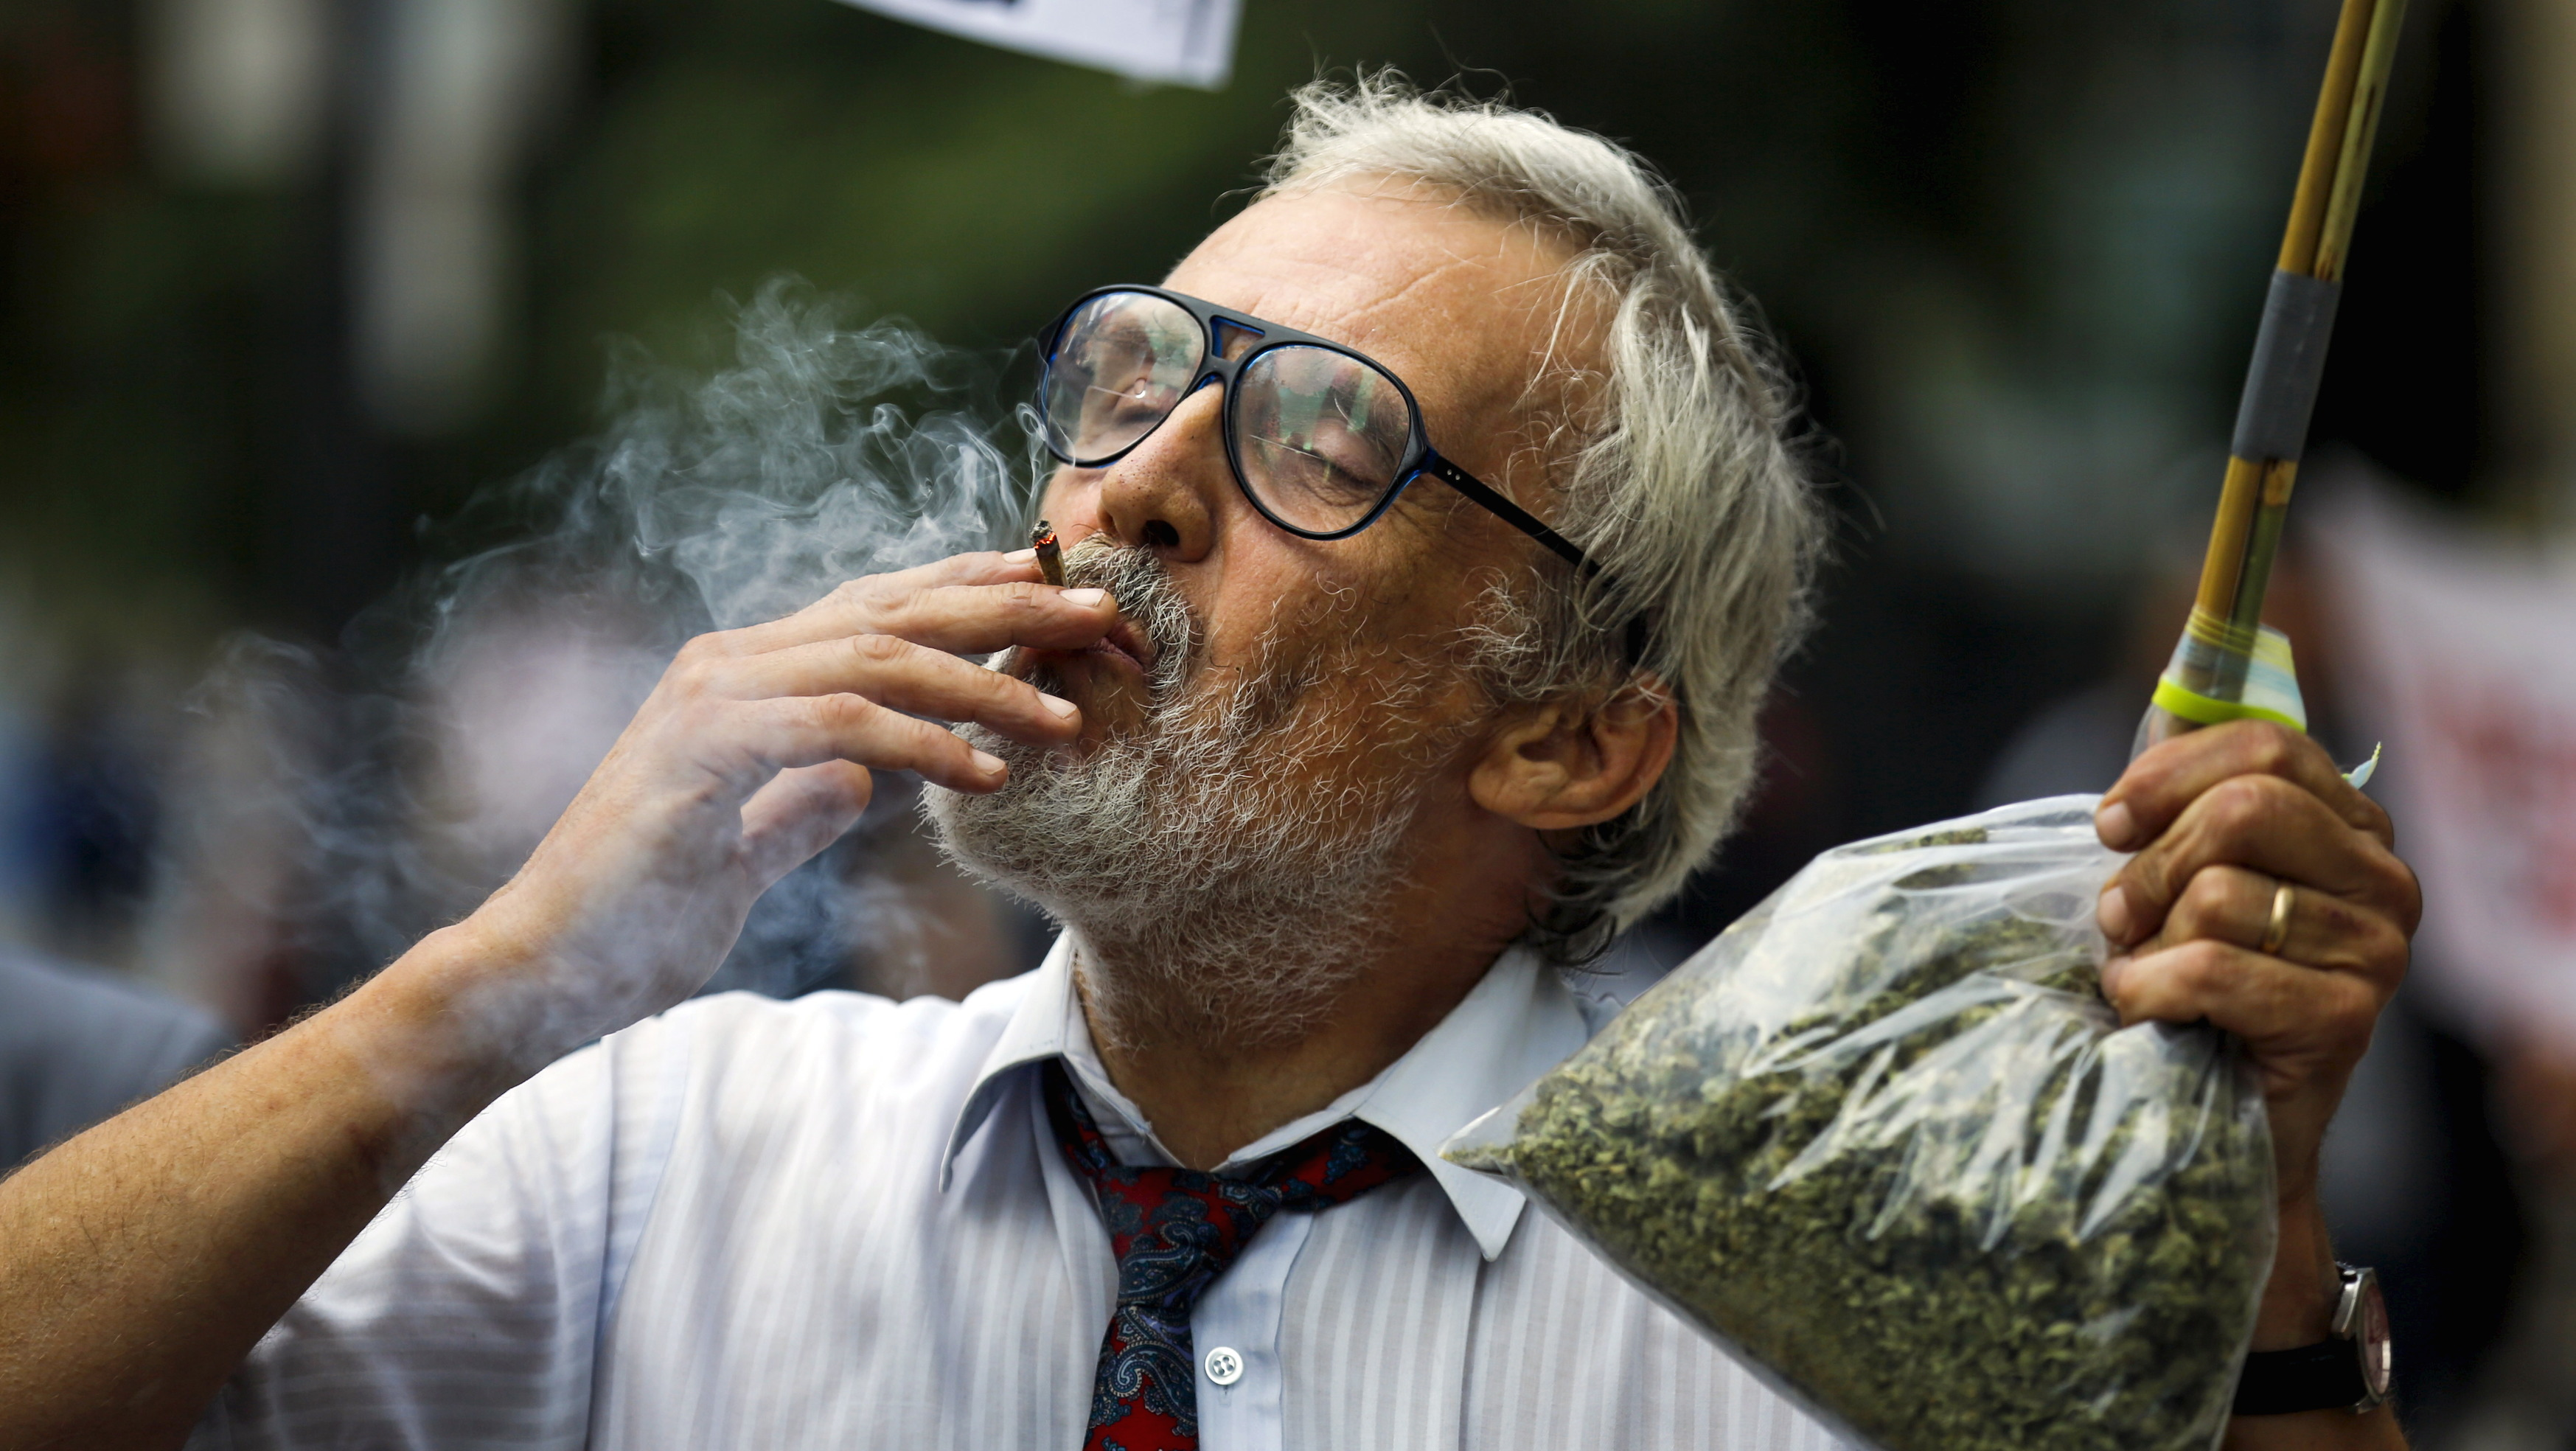 Marijuana's potential health benefits are being obscured by the US government's ineptitude